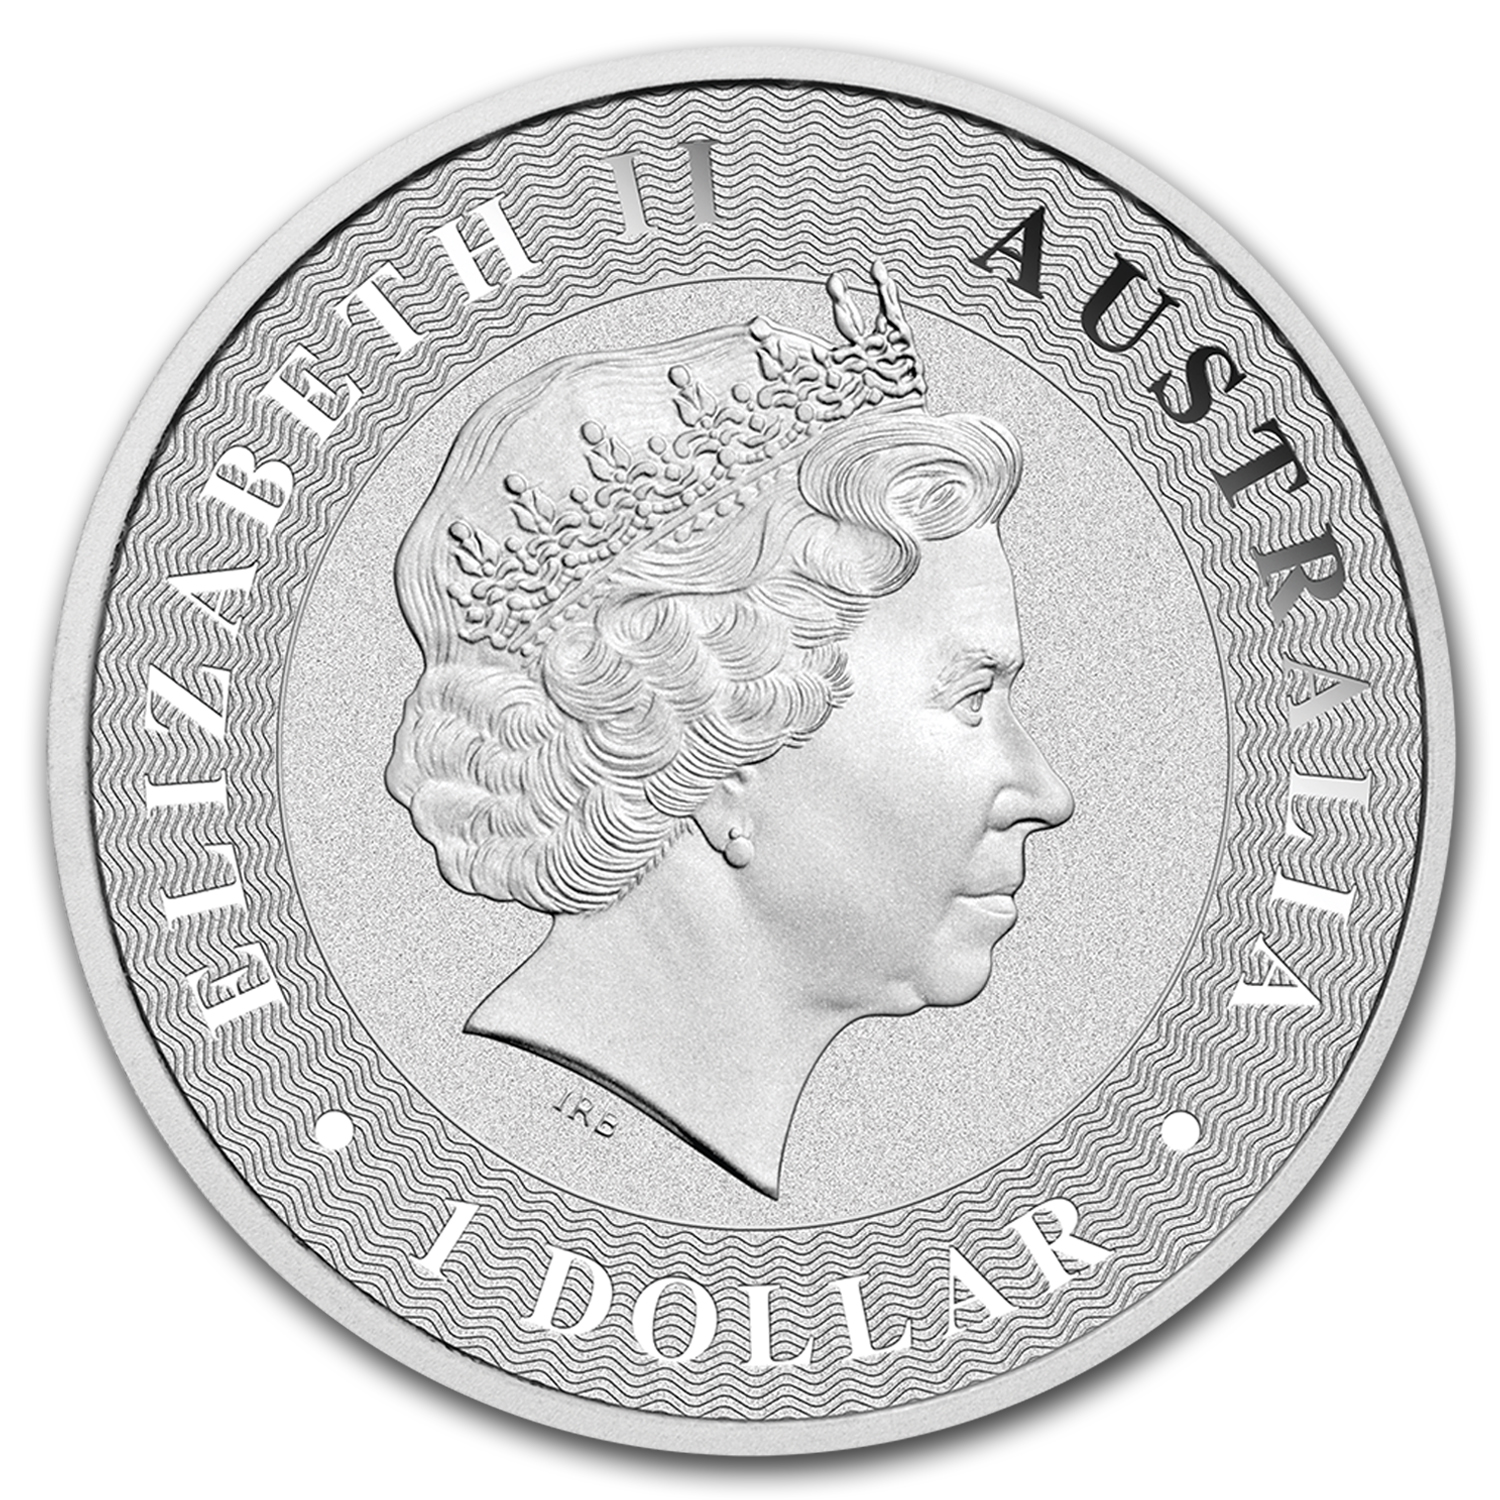 2017 Australia 1 oz Silver Kangaroo BU (Lot of 25) - eBay